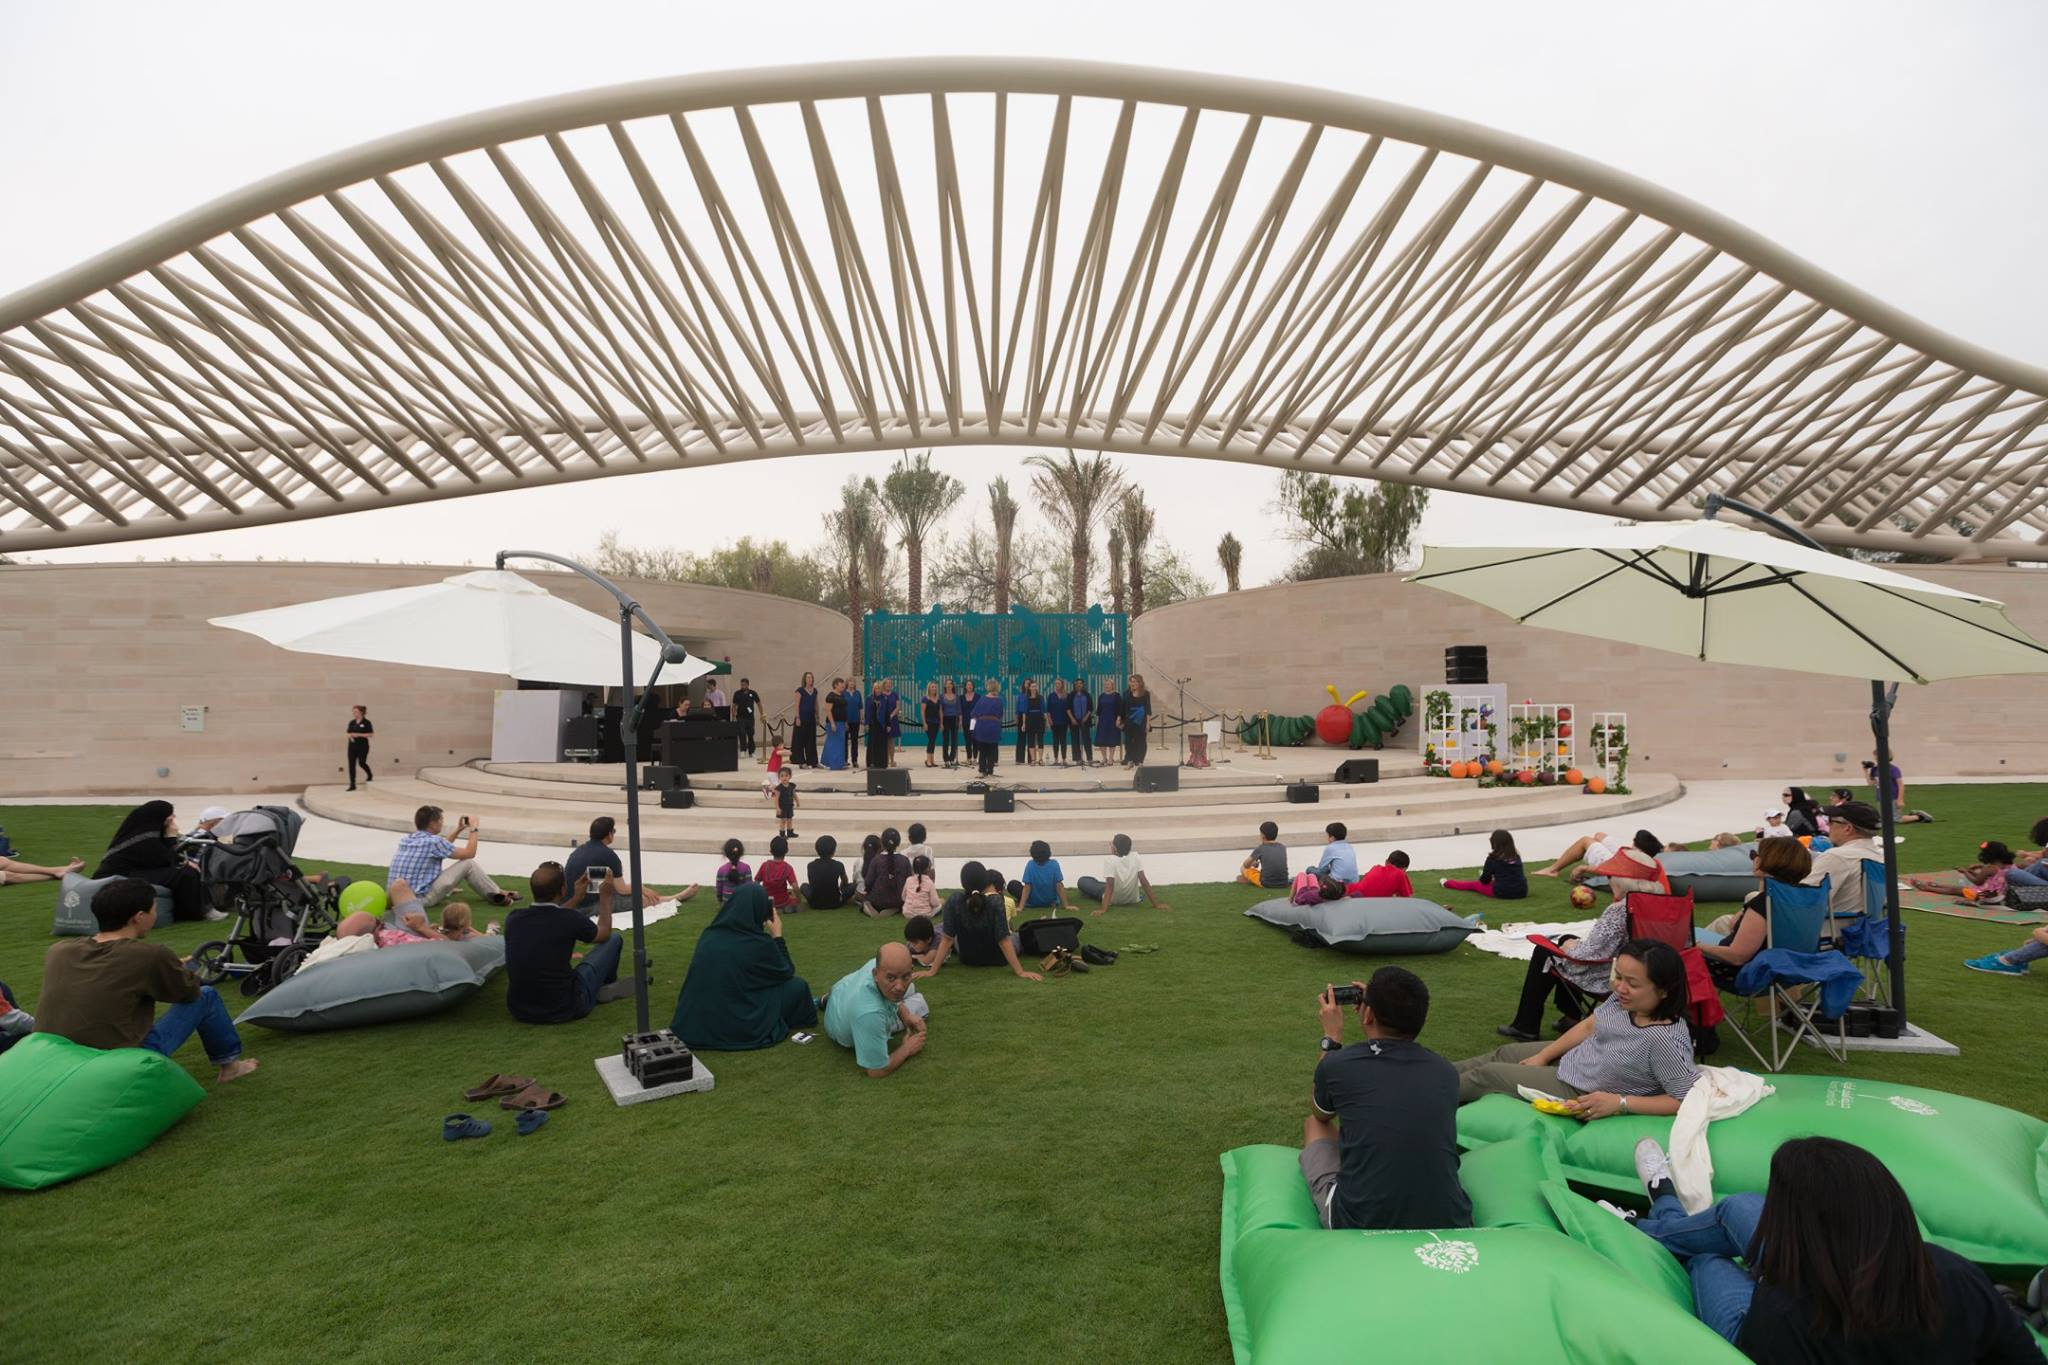 New events season at Mushrif Central Park, Abu Dhabi ...